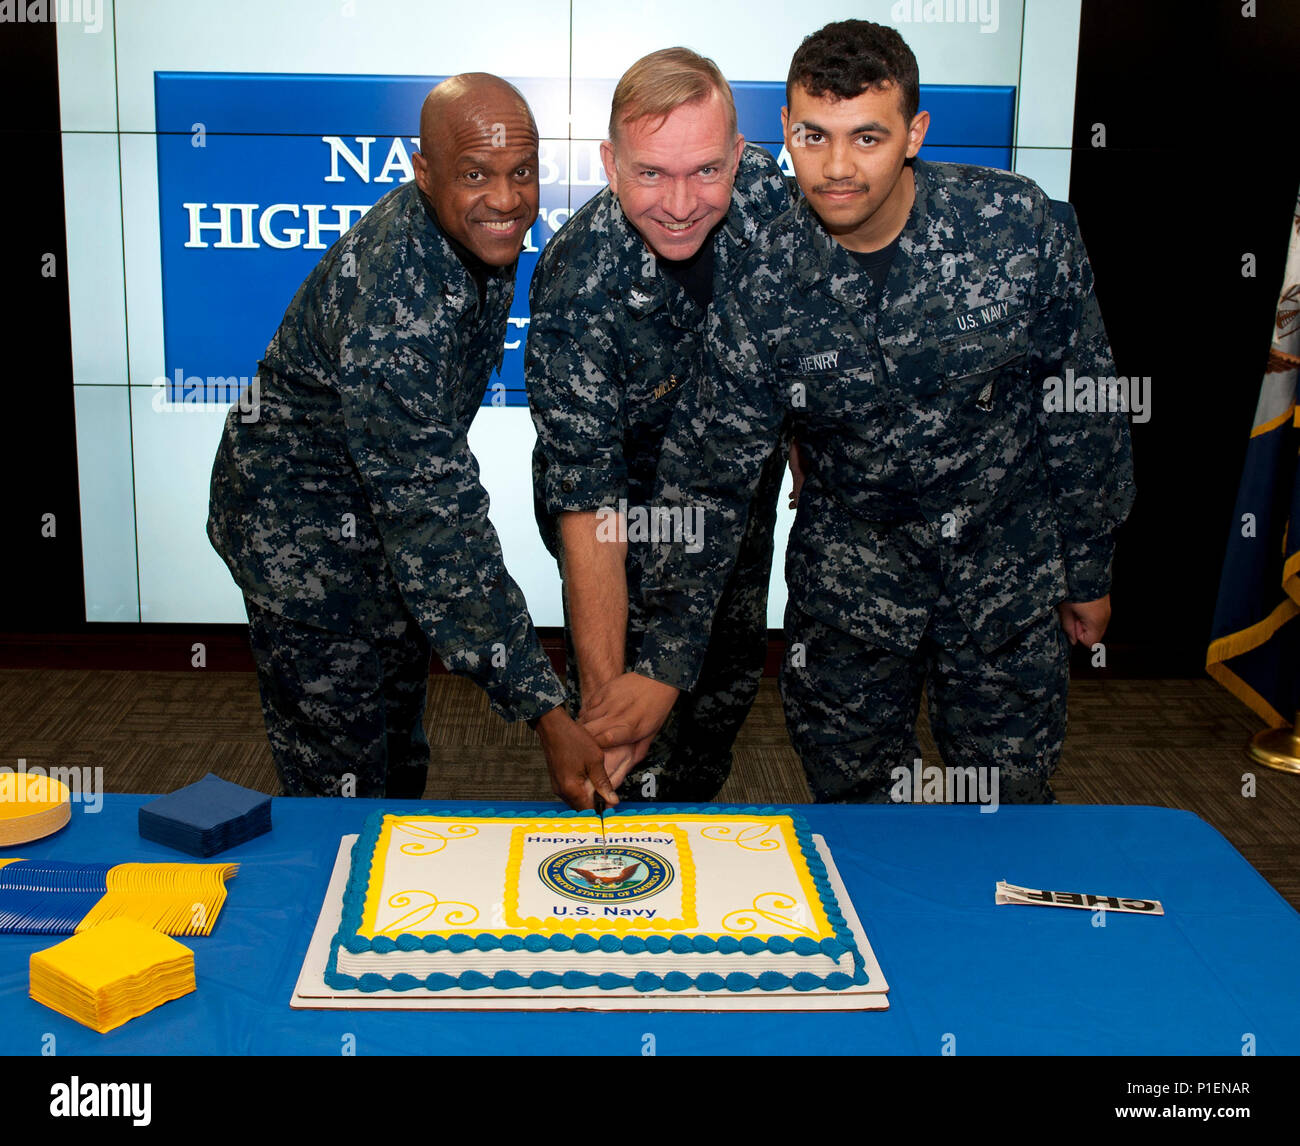 FORT GEORGE G. MEADE, Md. (October 13, 2016) Capt. James Mills, chief of staff, joins Capt. Clarence Franklin, the oldest Sailor present at the ceremony, and Seaman Derek Henry, the youngest Sailor present, in cutting a birthday cake during the Navy's 241st birthday celebration held Oct 13 at U.S. Fleet Cyber Command/U.S. 10th Fleet. U.S. Fleet Cyber Command serves as the Navy component command to U.S. Strategic Command/U.S. Cyber Command. U.S. 10th Fleet is the operational arm of Fleet Cyber Command.  (U.S. Navy photo by Steve Mavica/Released) - Stock Image